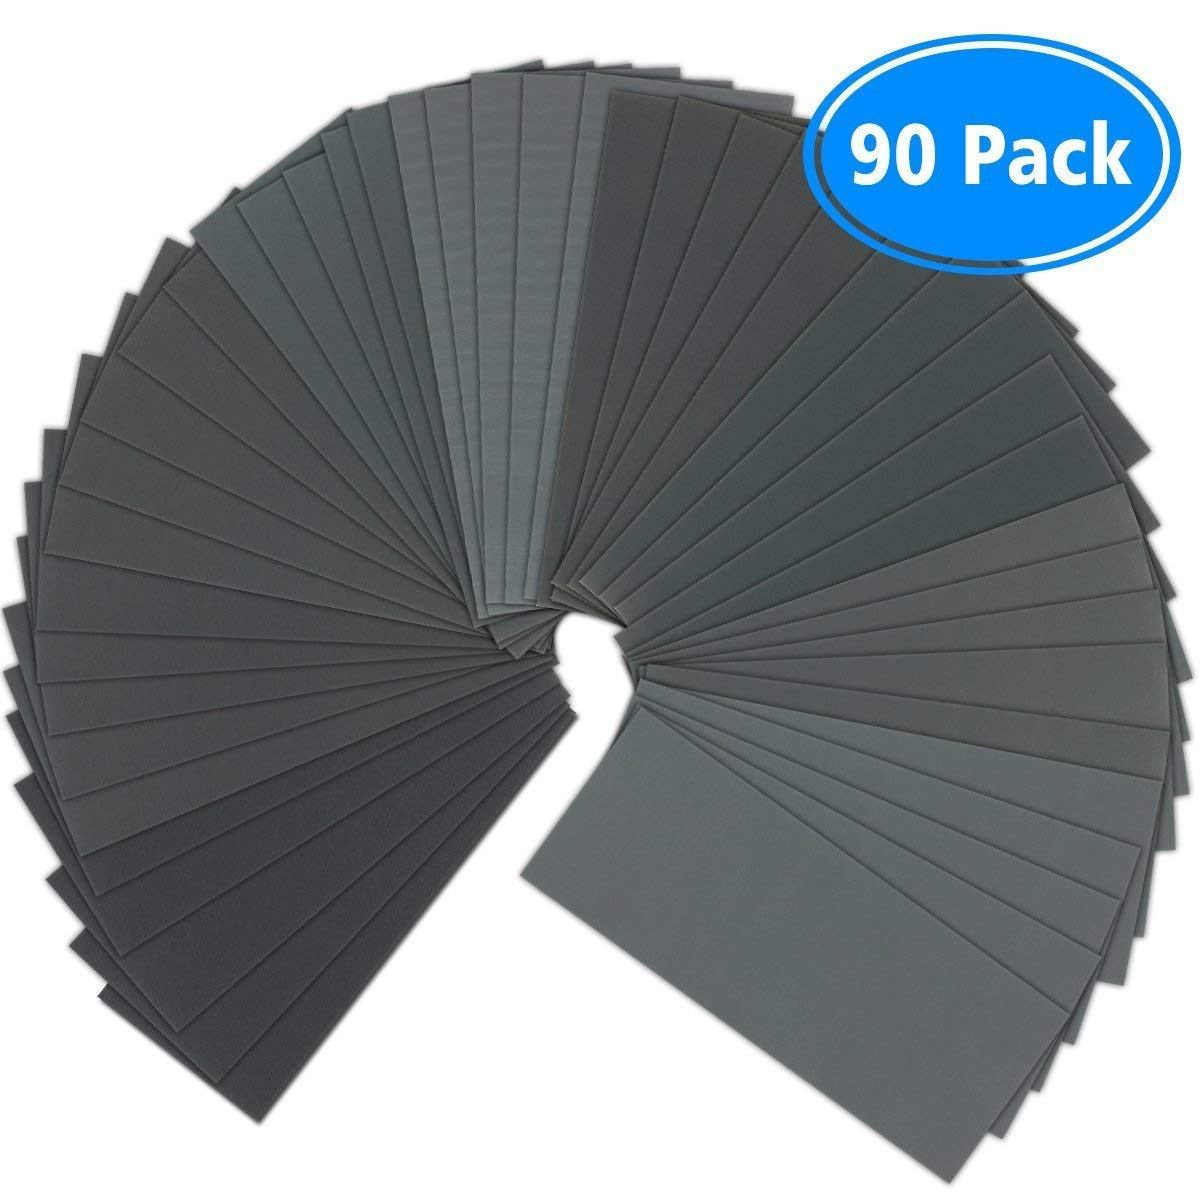 Sandpaper, 90 Pcs 400 to 3000 Grit Wet Dry Sandpaper Assortment 9x3.6 Inch for Automotive Sanding - Wood Furniture Finishing - Wood Turing Finishing and More by VERONES by VERONES